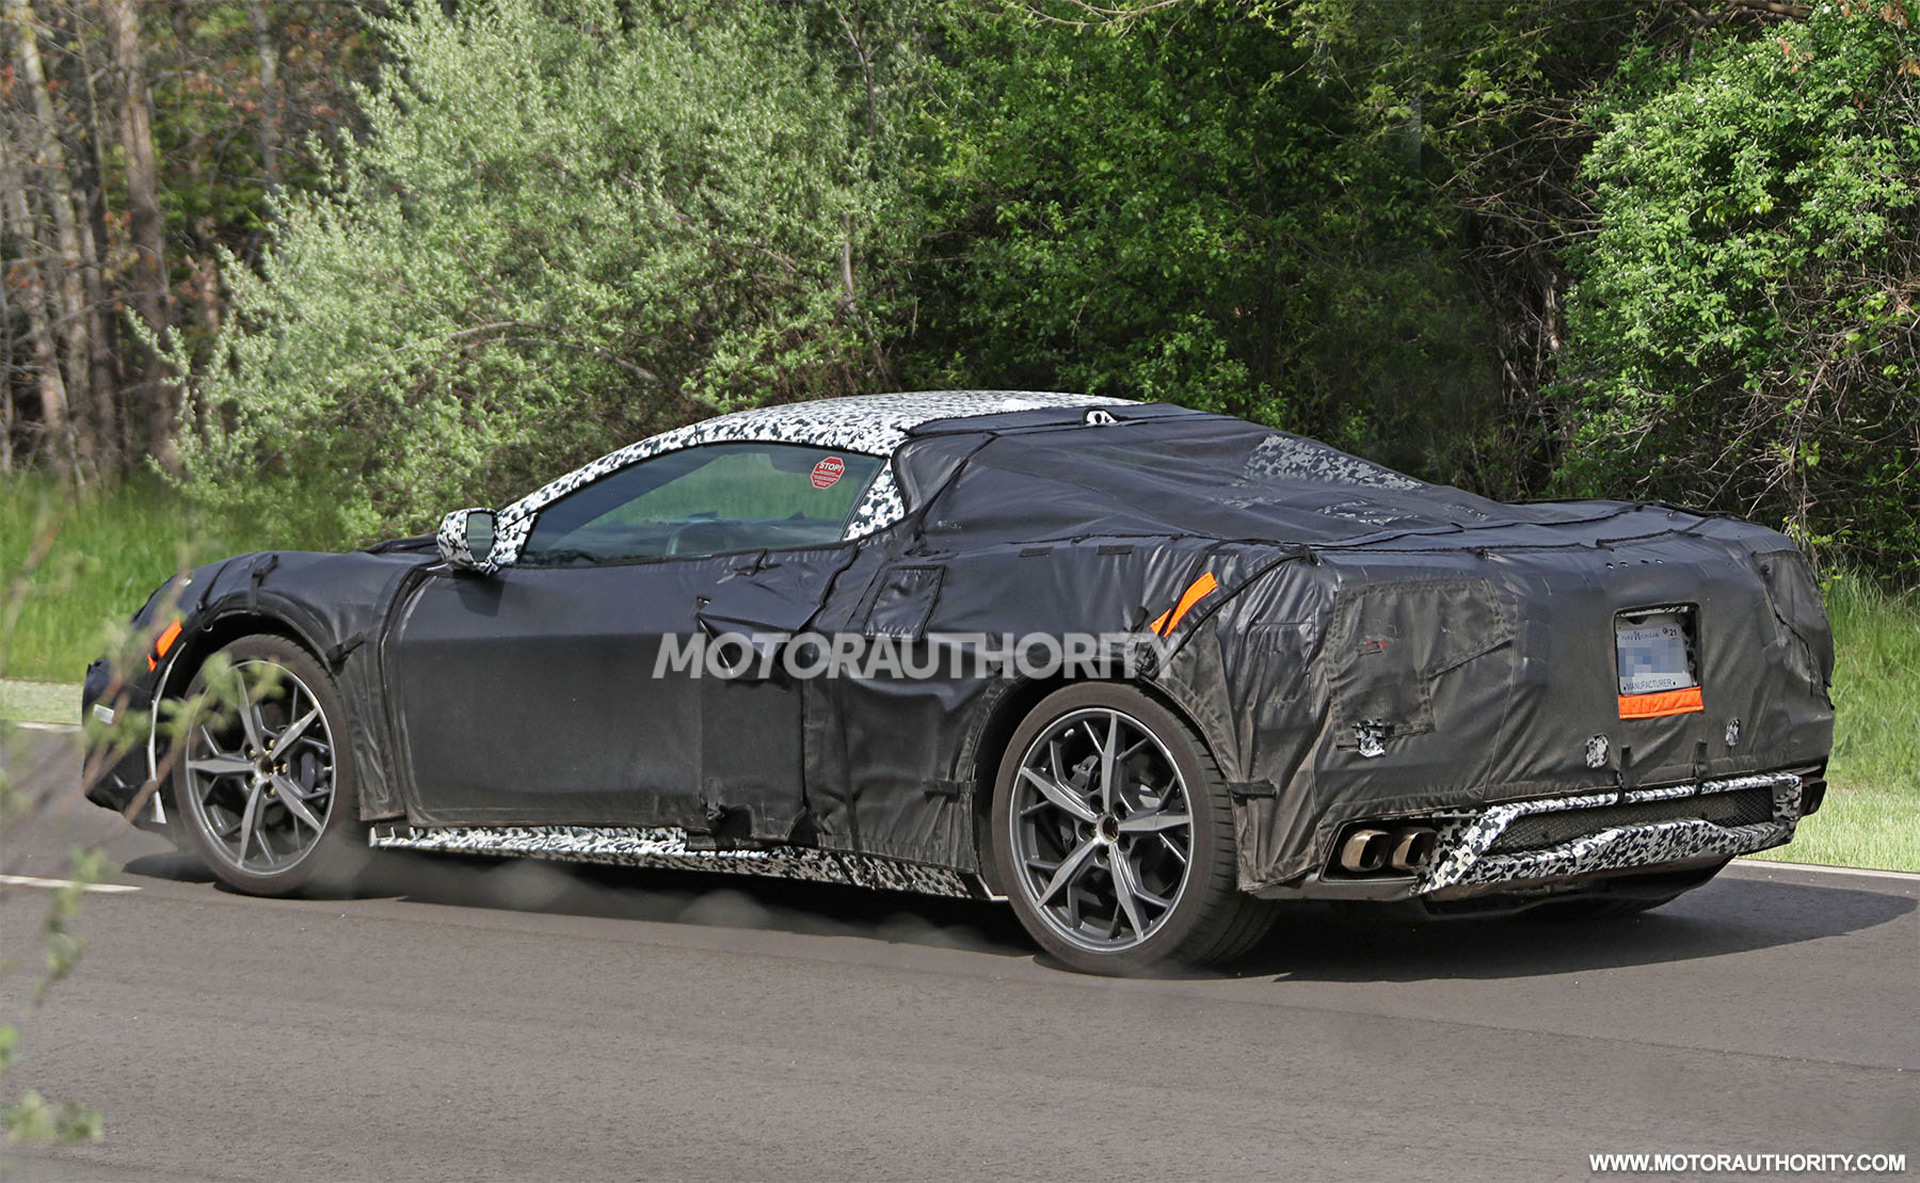 C8 Corvette Spied Mustang Gt Performance Pack 2 Tested